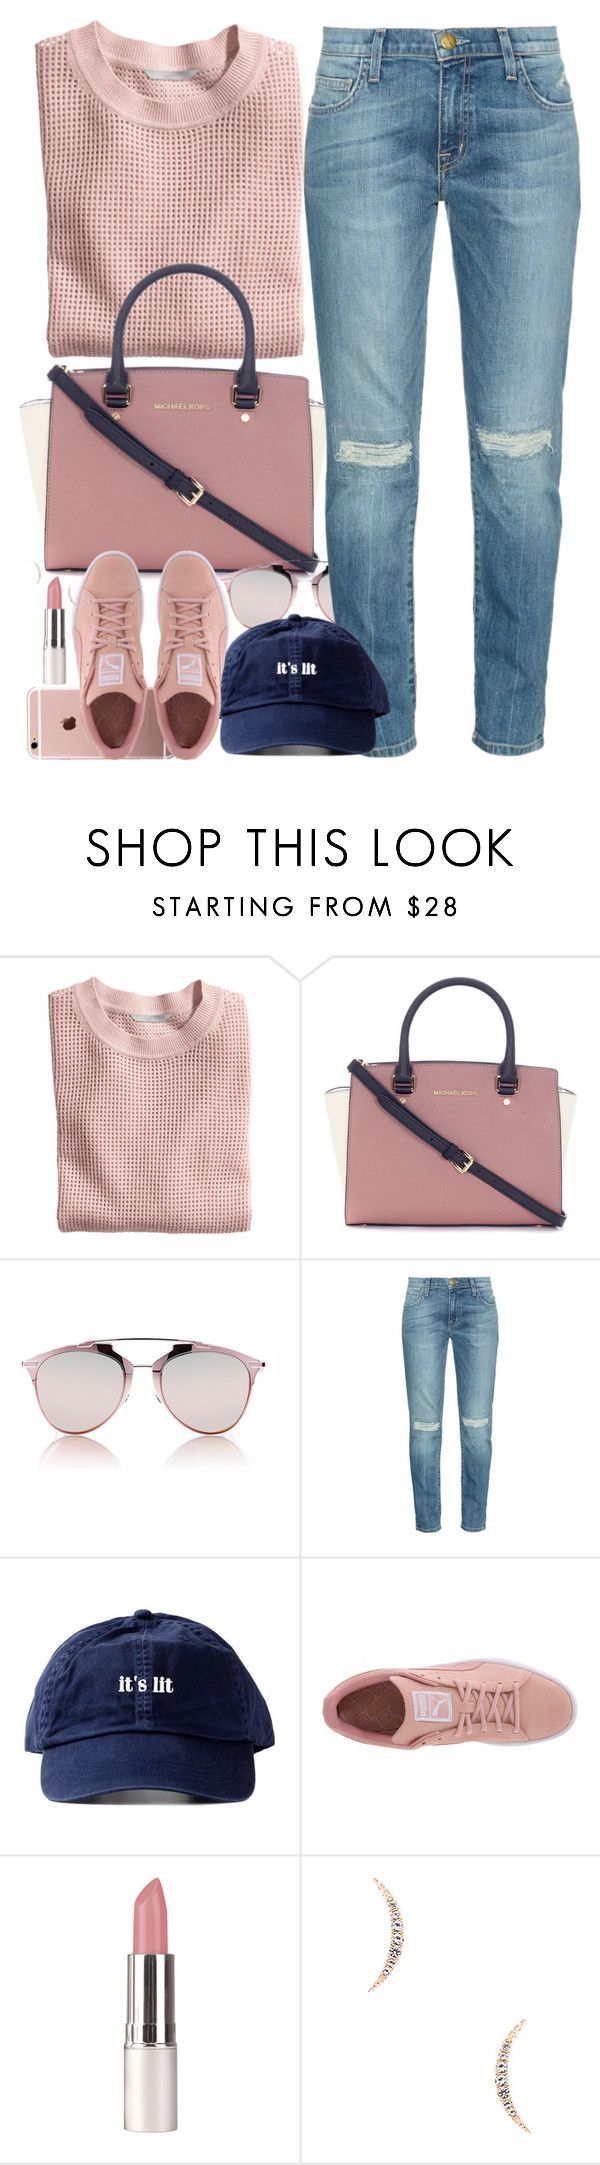 """""""Guys Should I Make A Group???"""" by oh-aurora ❤ liked on Polyvore featuring H&M, Michael Kors, Christian Dior, Current/Elliott, Puma and Elizabeth and James"""